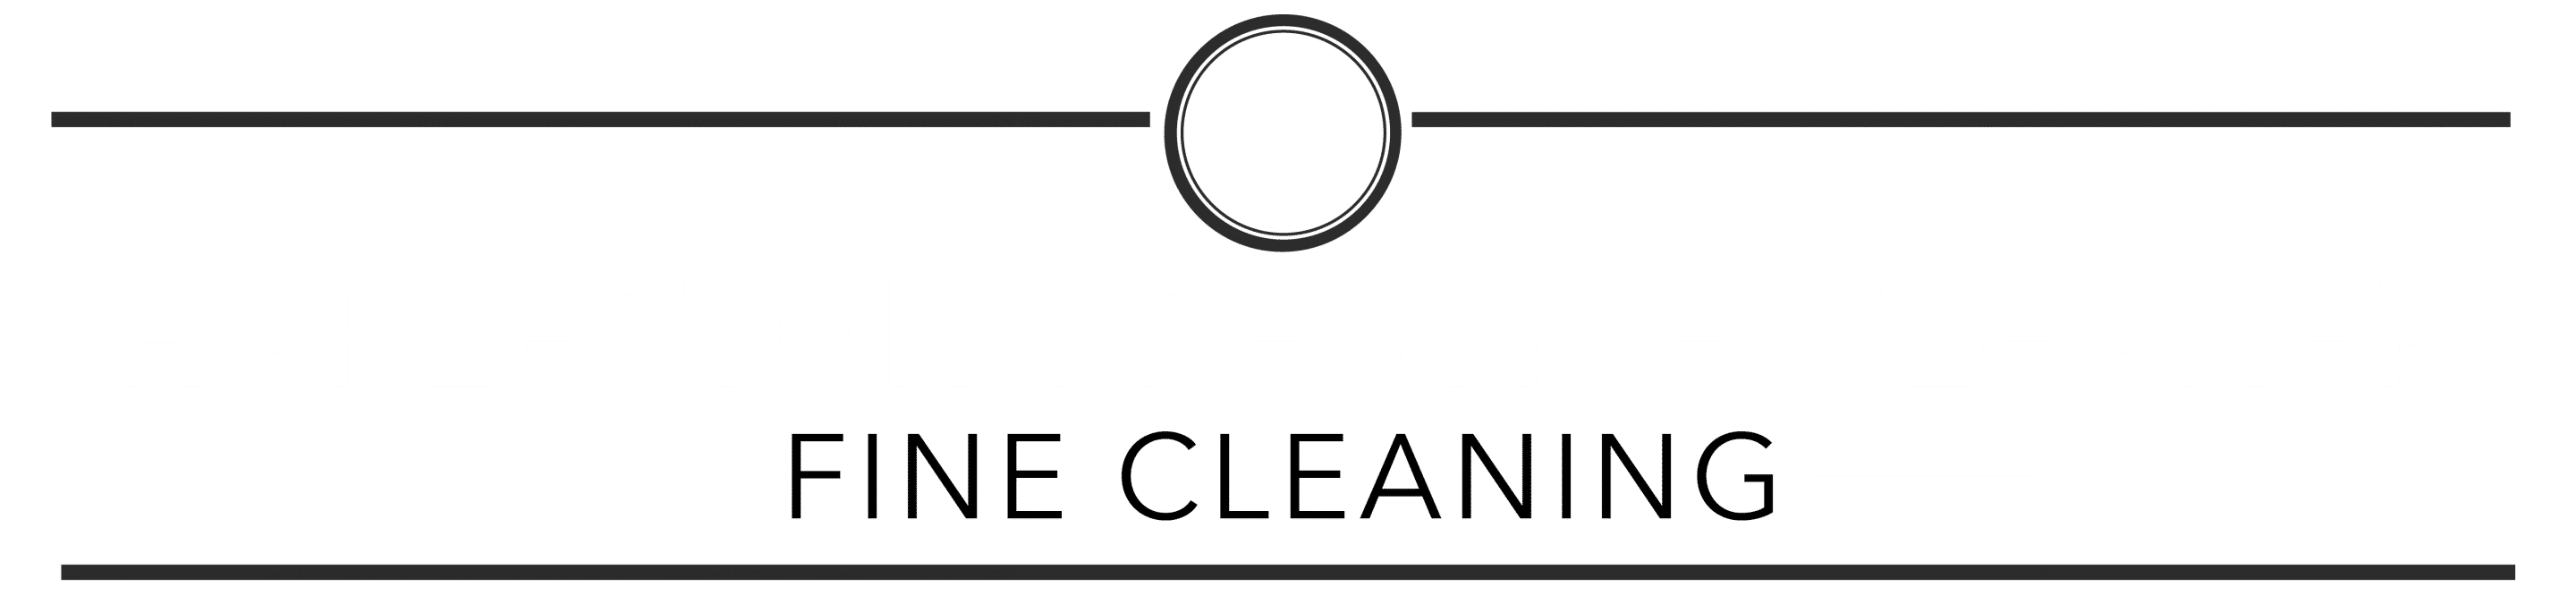 Charleston Prestige Cleaners